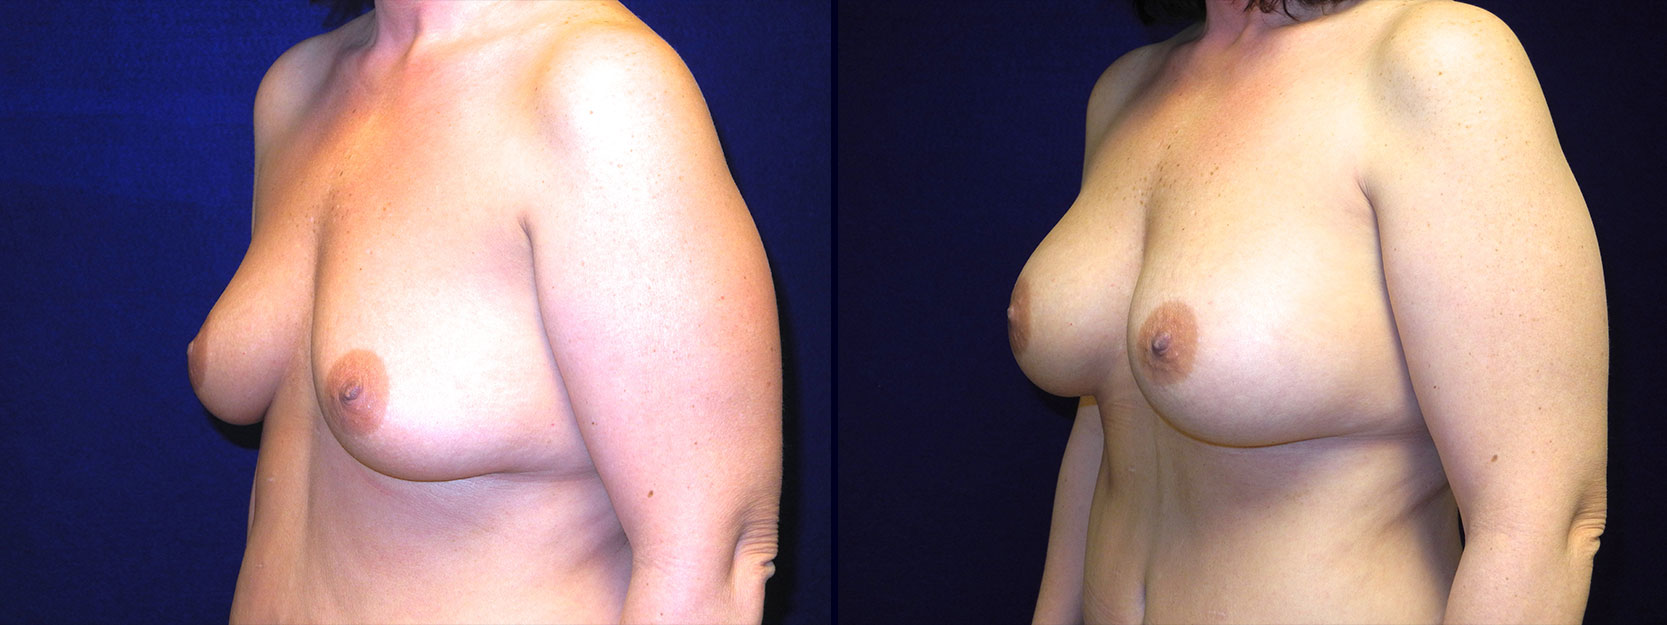 Left 3/4 View - Breast Augmentation After Weight Loss